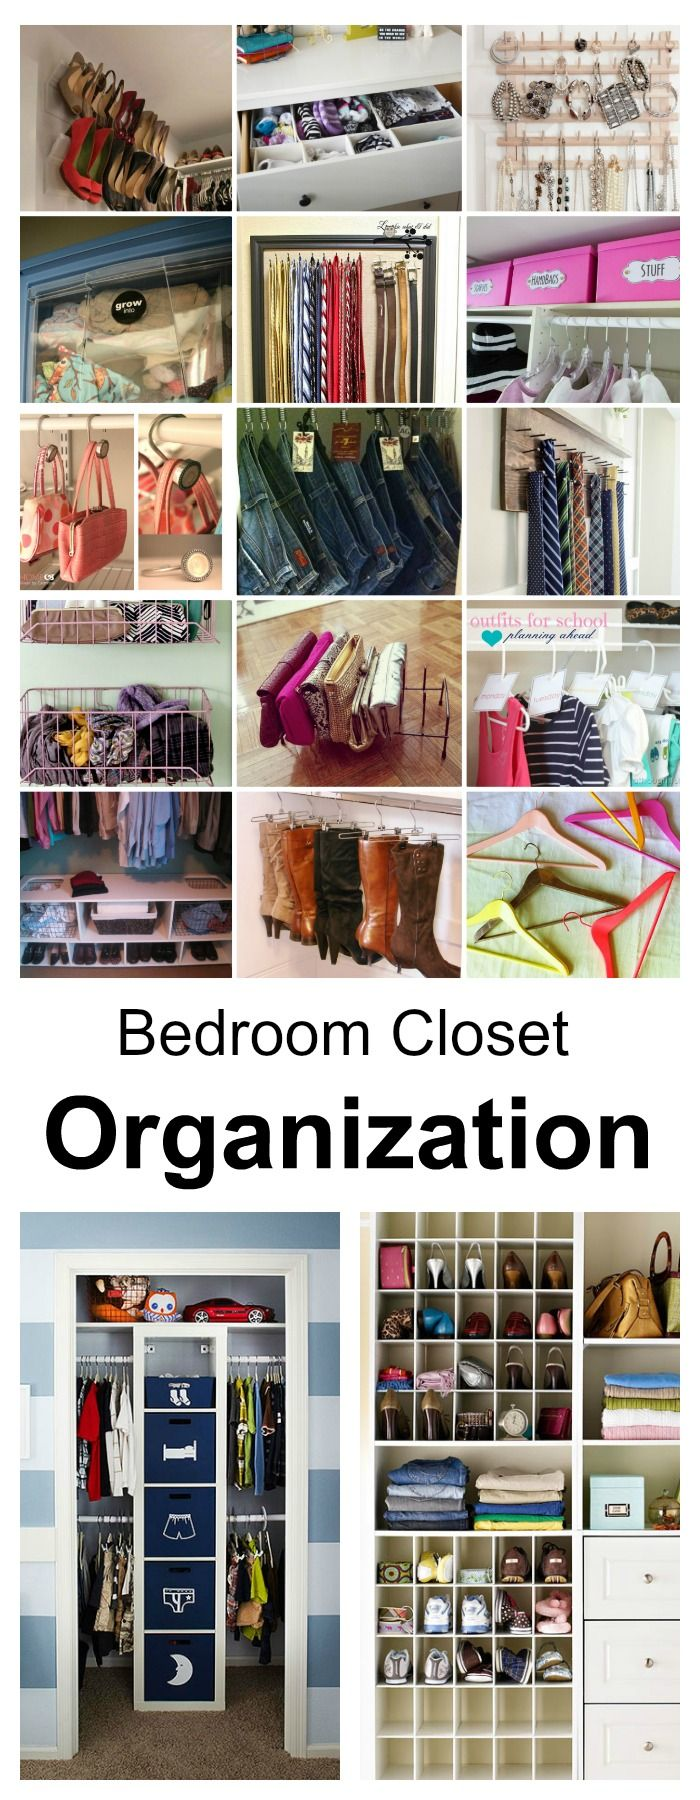 77 Best Room Organization Master Closet Images On